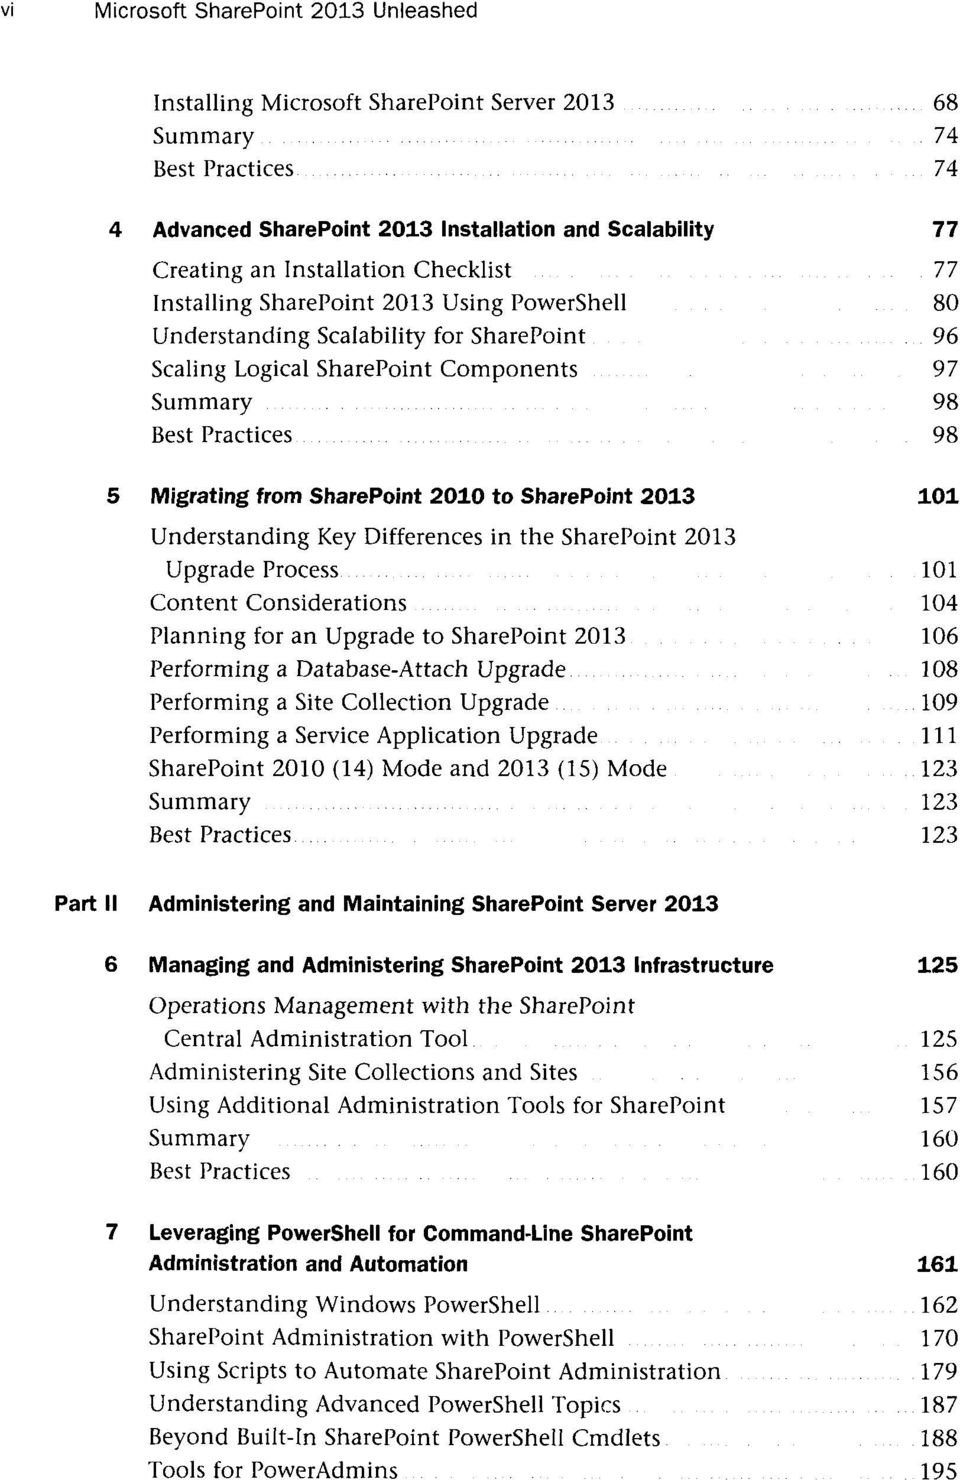 SharePoint 2010 to SharePoint 2013 101 Understanding Key Differences in the SharePoint 2013 Upgrade Process 101 Content Considerations 104 Planning for an Upgrade to SharePoint 2013 106 Performing a